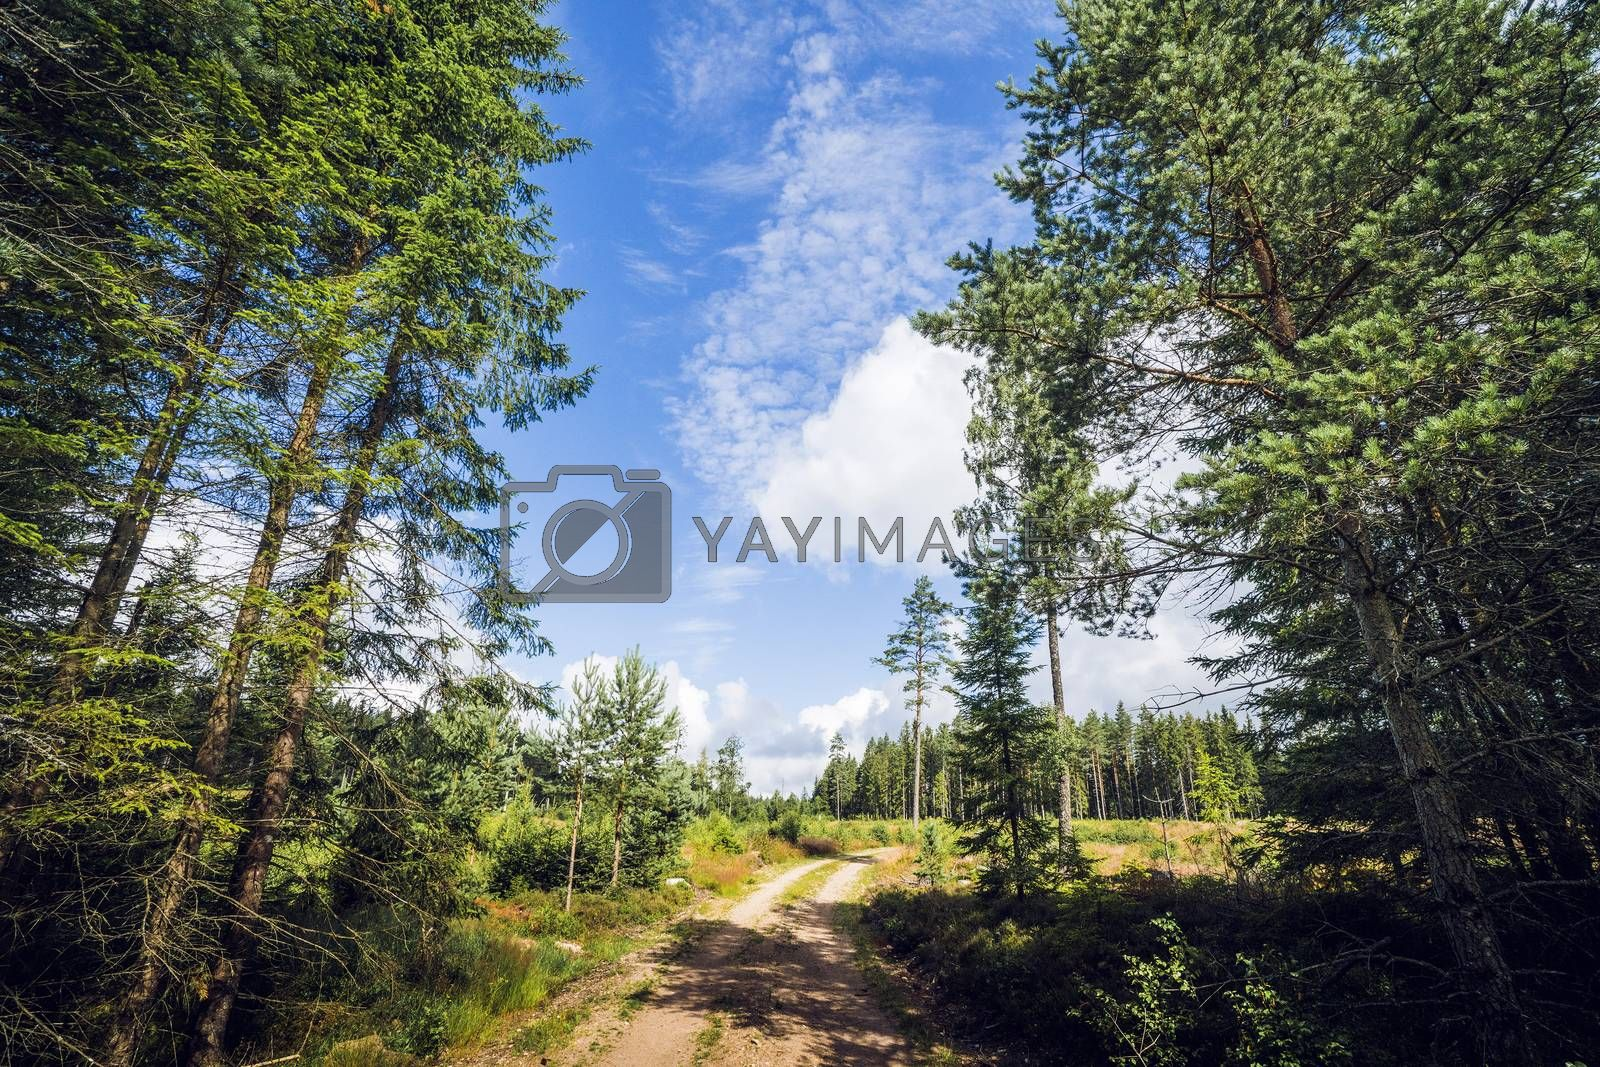 Road in a nordic forest with tall pine trees amd blue sky